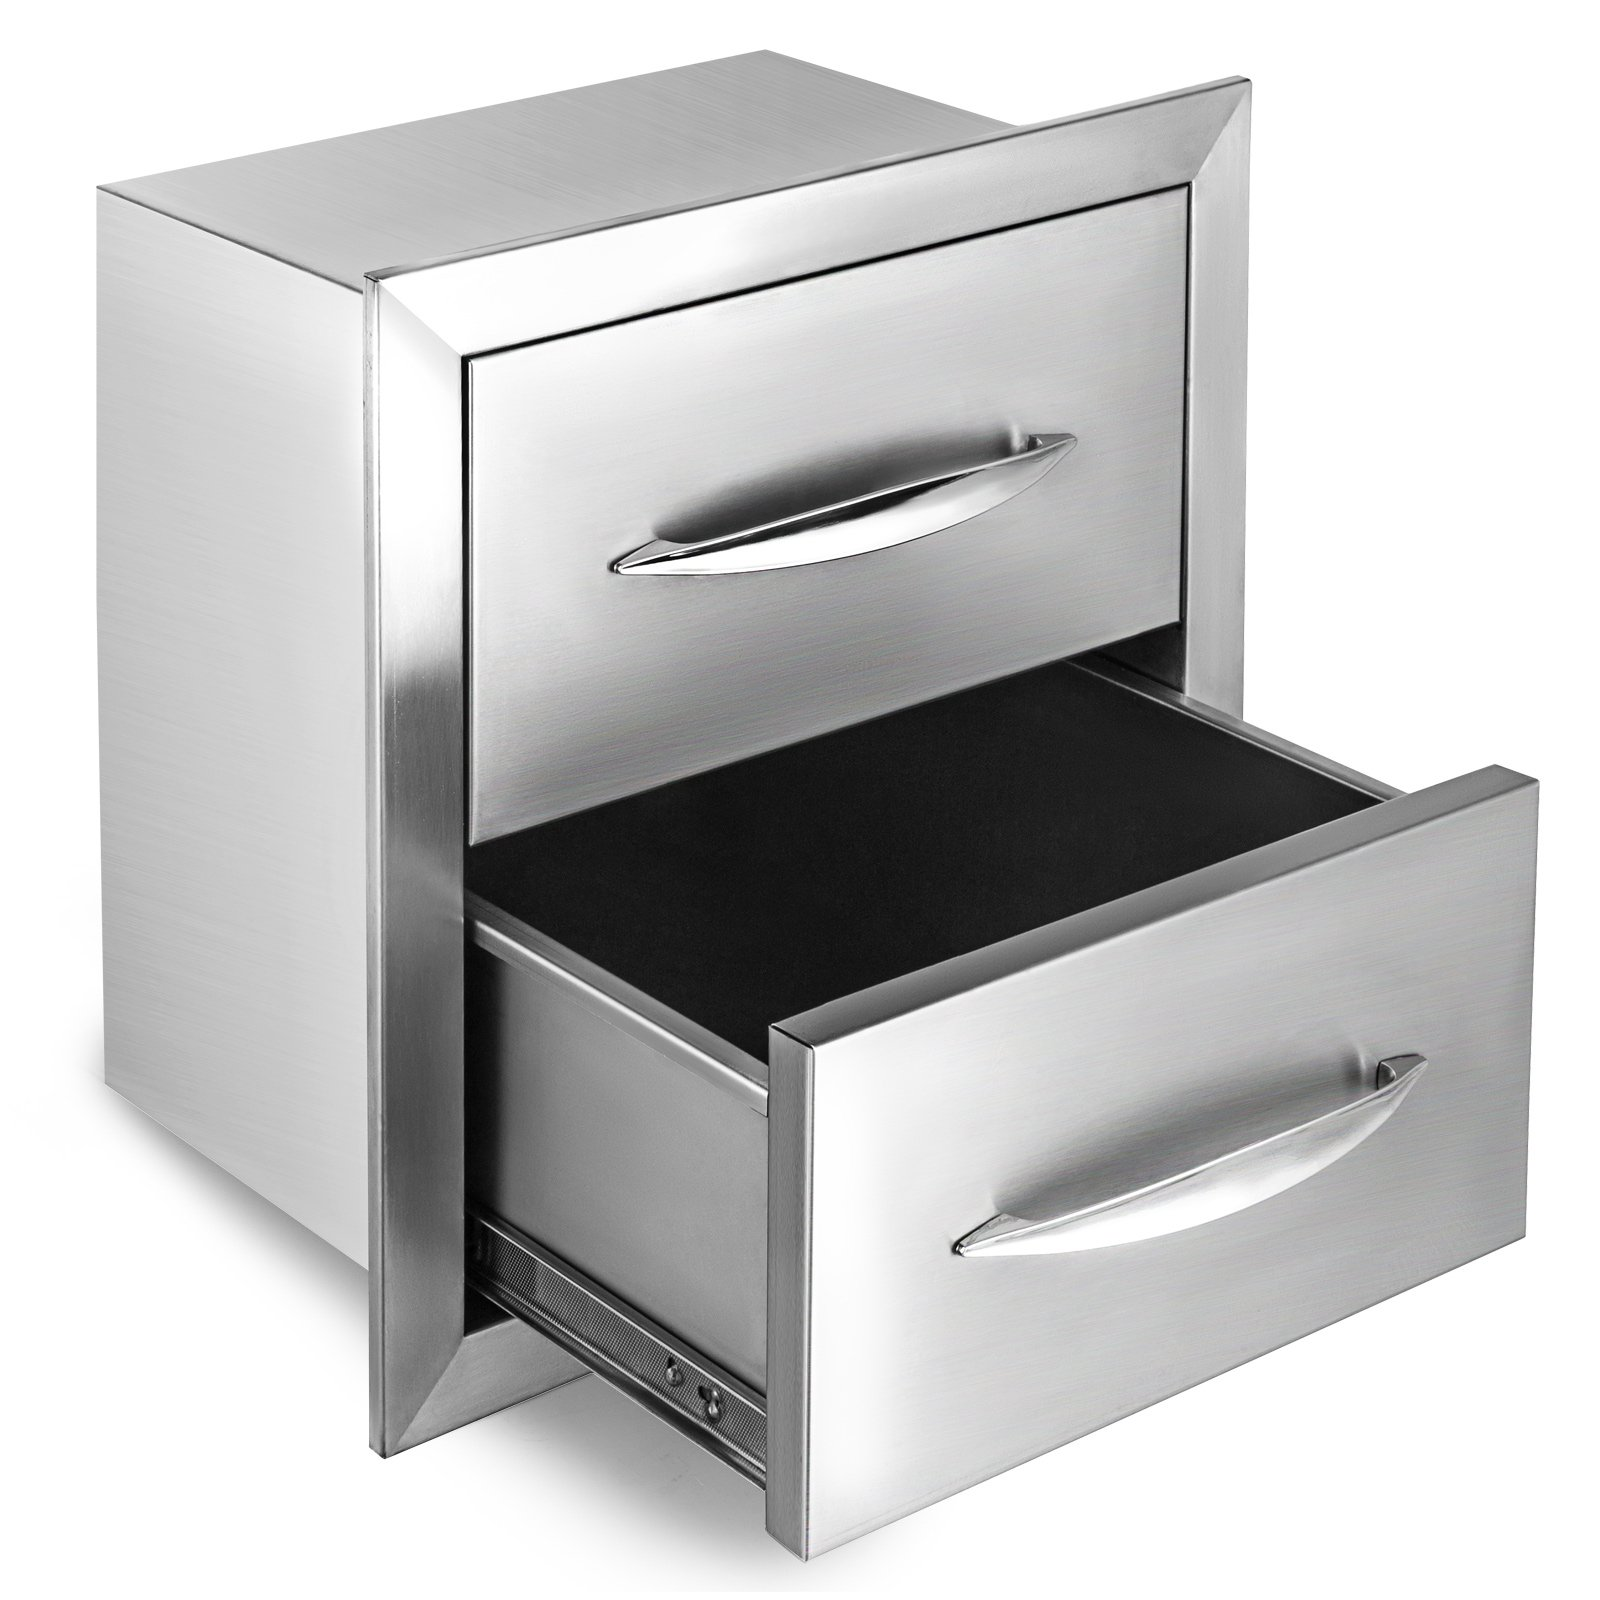 Happybuy Outdoor Kitchen Drawer 18x15 Inch Stainless Steel Double Access BBQ Drawers with Handle by Happybuy